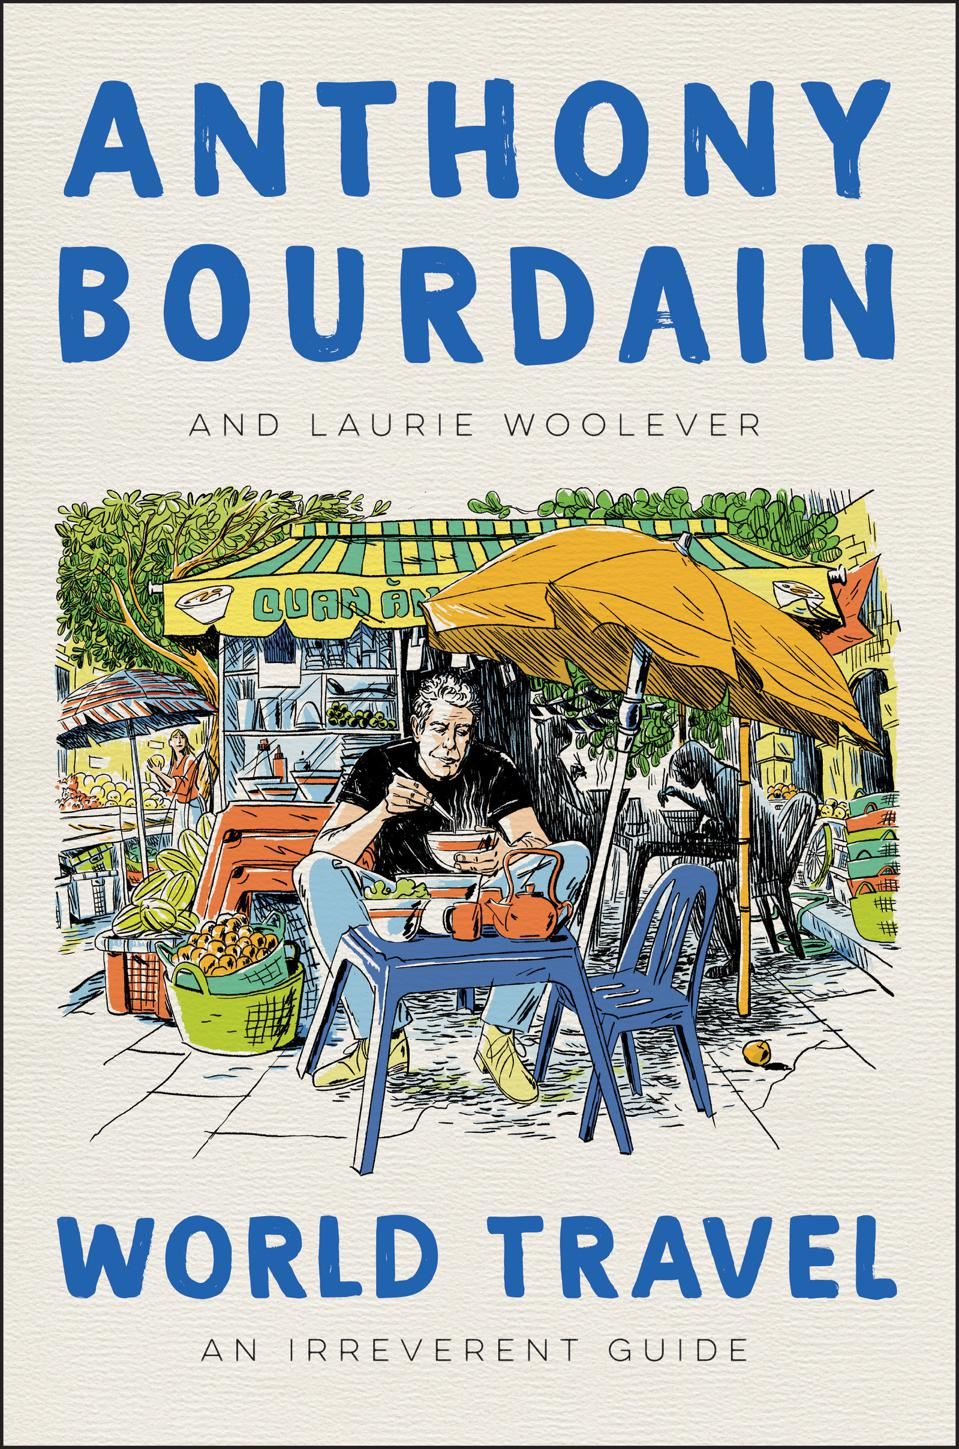 ″World Travel: An Irreverent Guide″ by Anthony Bourdain and Laurie Woolever